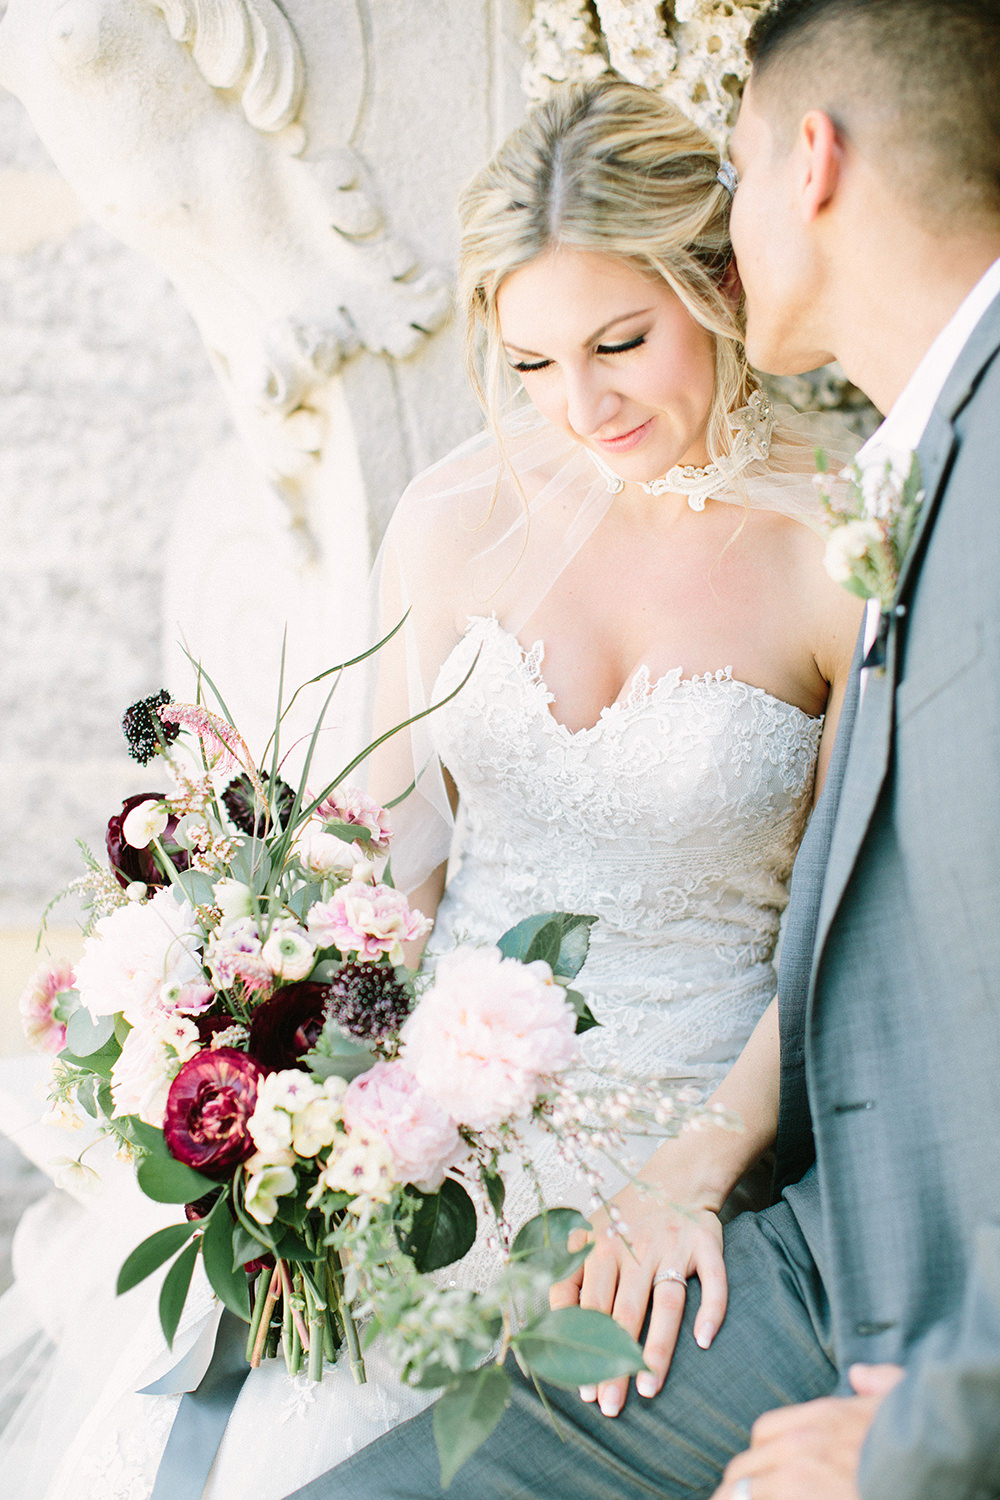 romantic wedding inspiration - photo by Erica J Photography https://ruffledblog.com/old-world-wedding-editorial-at-vizcaya-museum